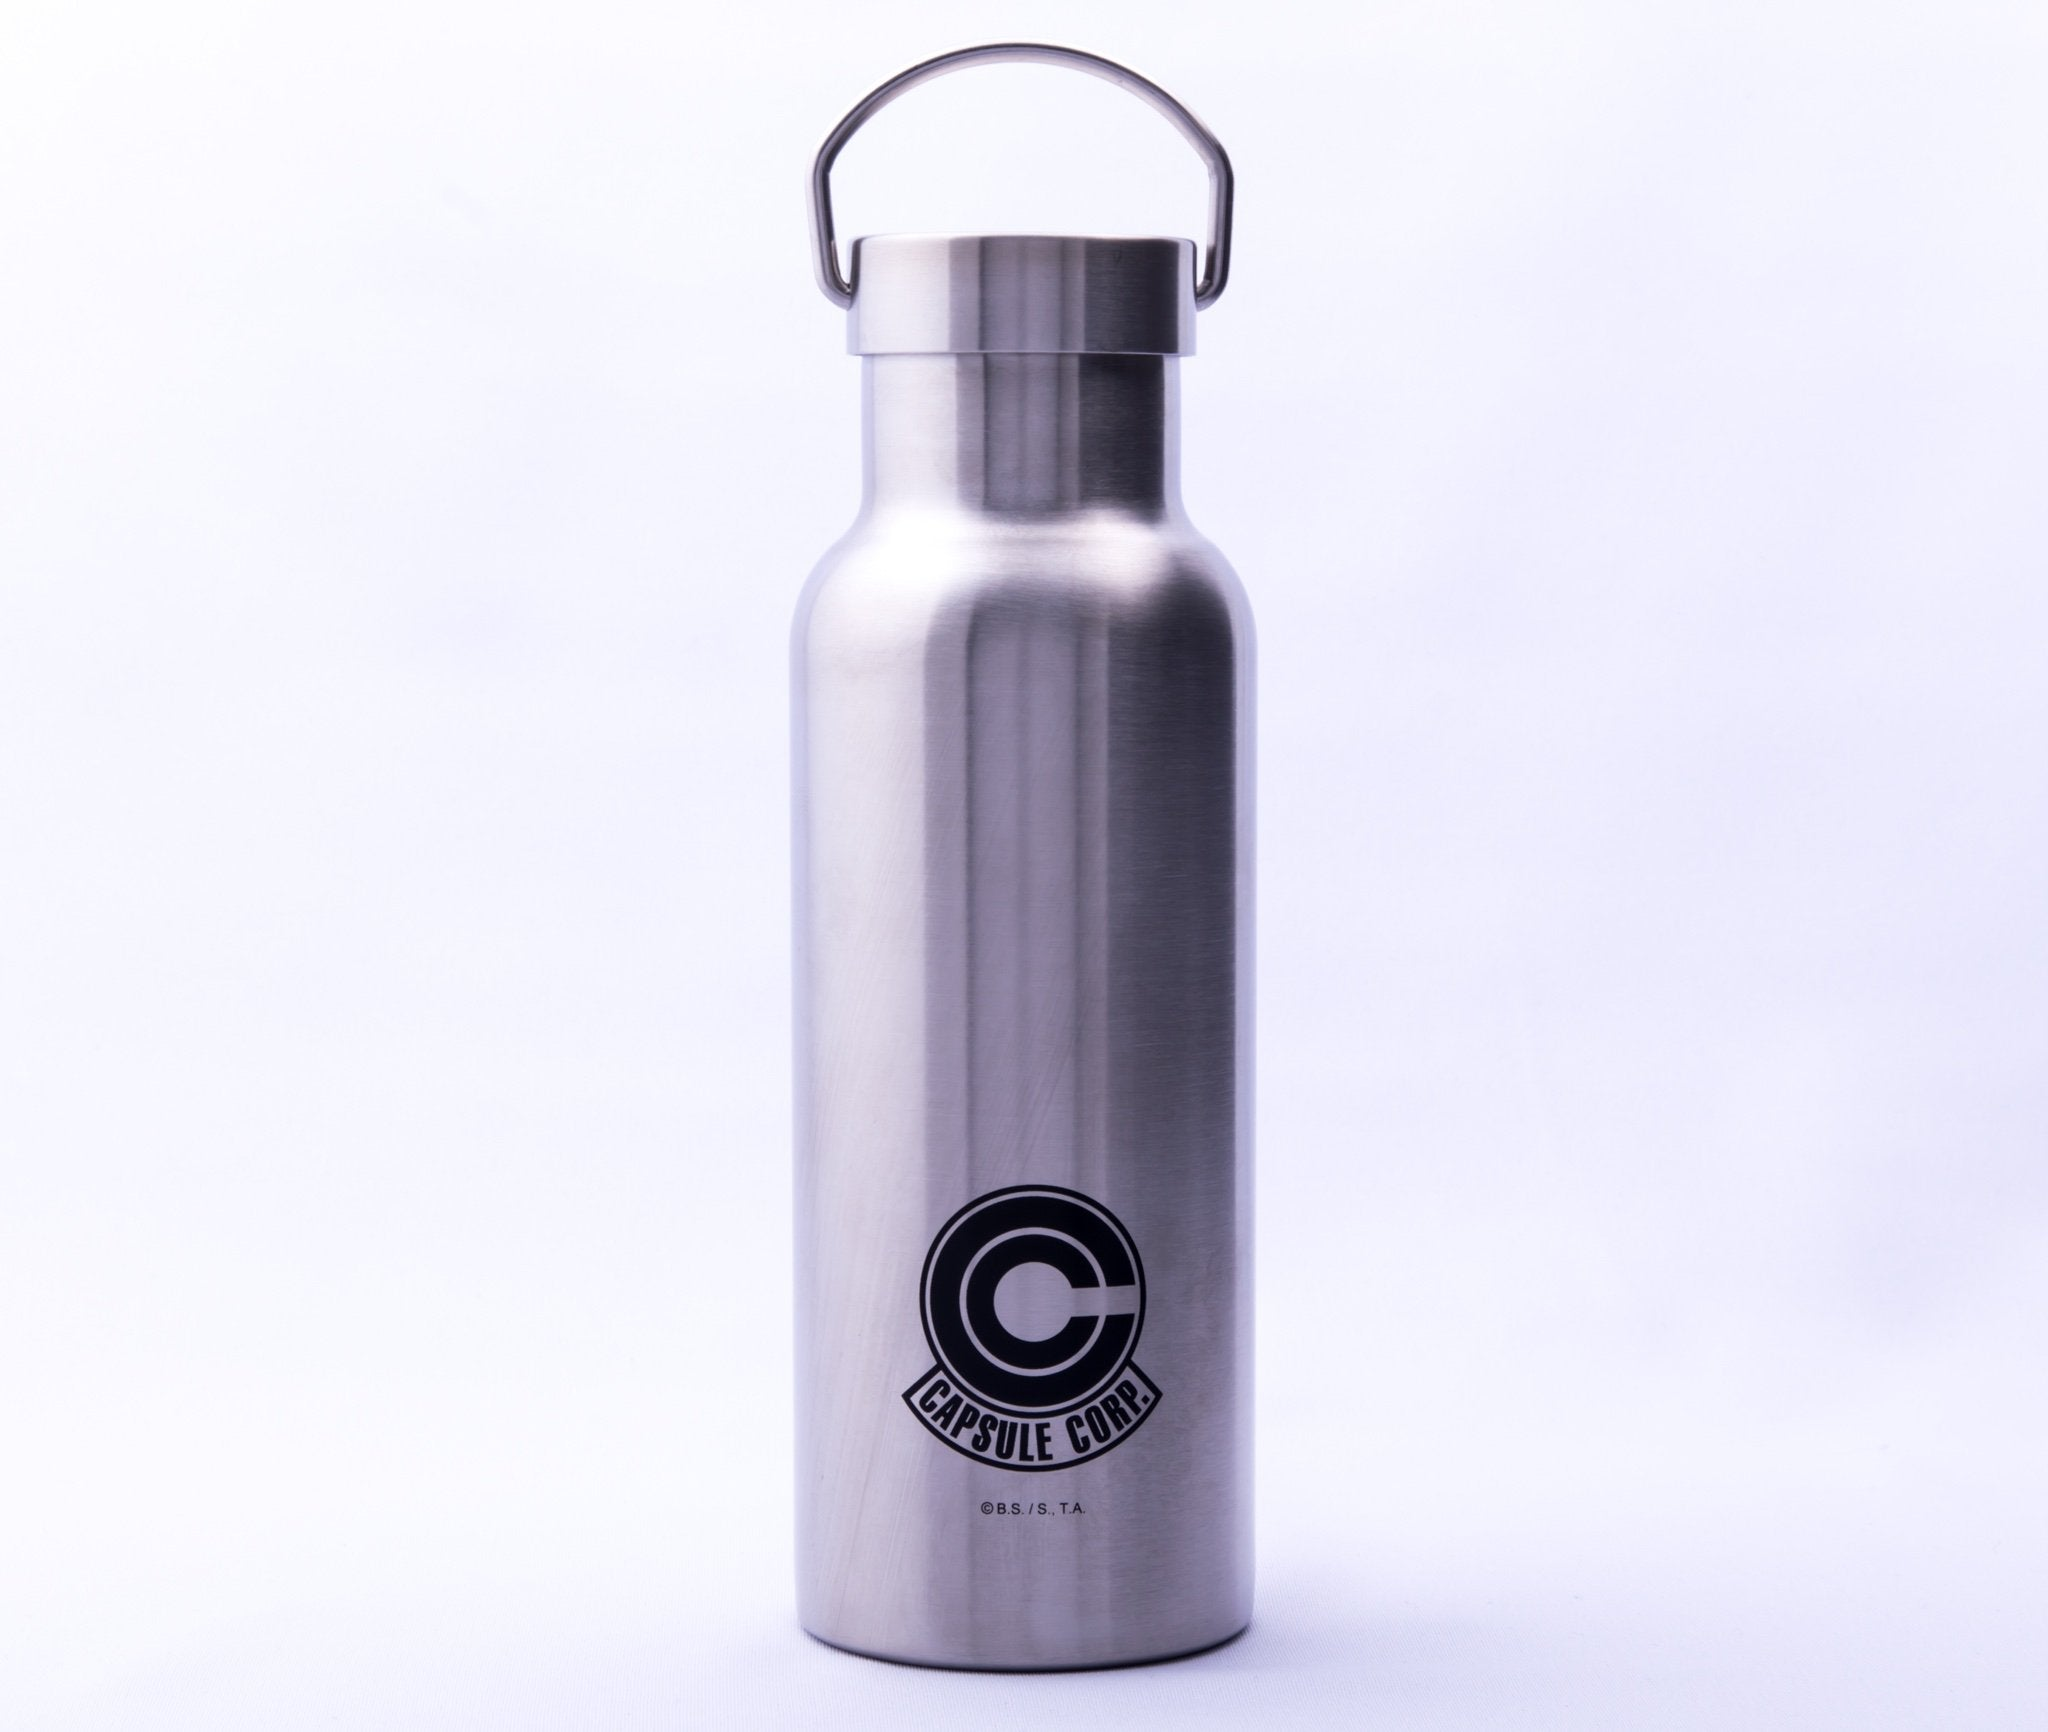 Capsule Corp. Stainless Bottle by Bento&co - Bento&co Japanese Bento Lunch Boxes and Kitchenware Specialists